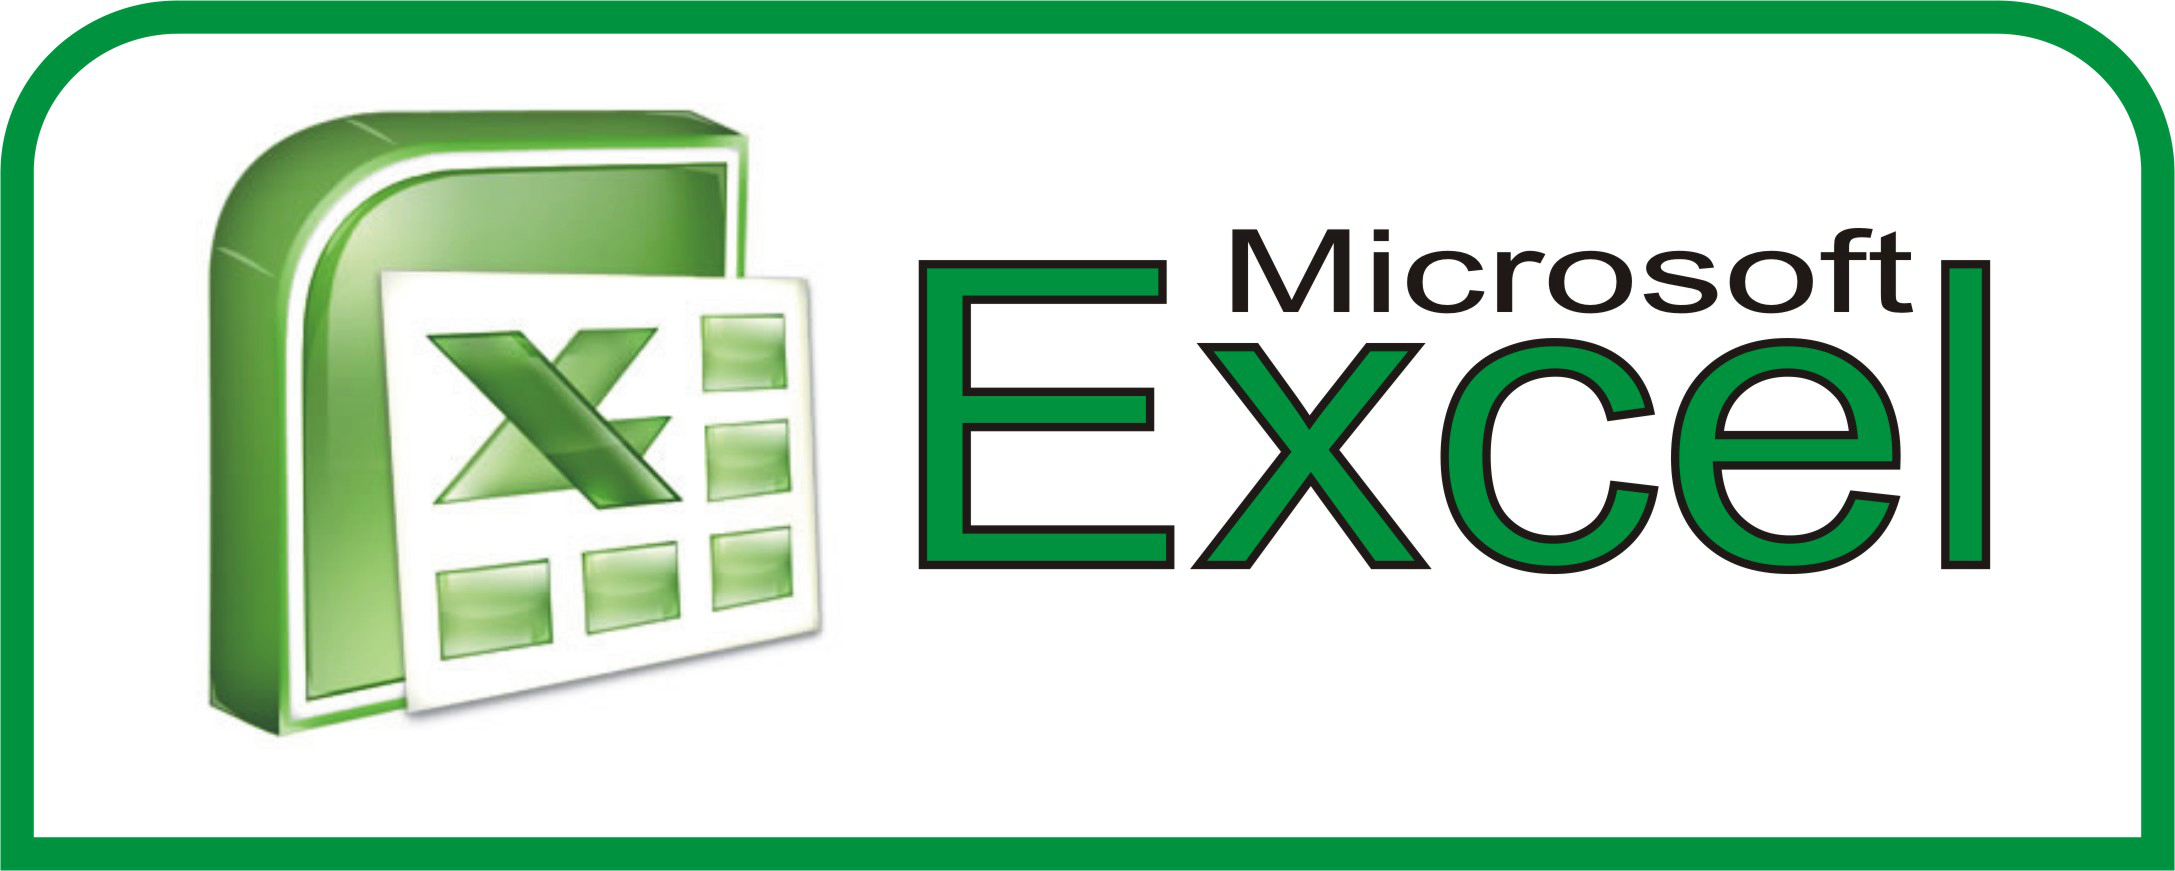 Ediblewildsus  Terrific  Excel Shortcuts You Probably Didnt Know About  Techdissected With Entrancing Excel Vba Floor Besides Plot Graph Excel Furthermore Find Dupes In Excel With Amusing Latest Version Of Microsoft Excel Also Google Calendar Export To Excel In Addition Retirement Planning Excel Spreadsheet And Date Countdown In Excel As Well As Excel Residual Plot Additionally Percentage Increase Calculator Excel From Techdissectedcom With Ediblewildsus  Entrancing  Excel Shortcuts You Probably Didnt Know About  Techdissected With Amusing Excel Vba Floor Besides Plot Graph Excel Furthermore Find Dupes In Excel And Terrific Latest Version Of Microsoft Excel Also Google Calendar Export To Excel In Addition Retirement Planning Excel Spreadsheet From Techdissectedcom